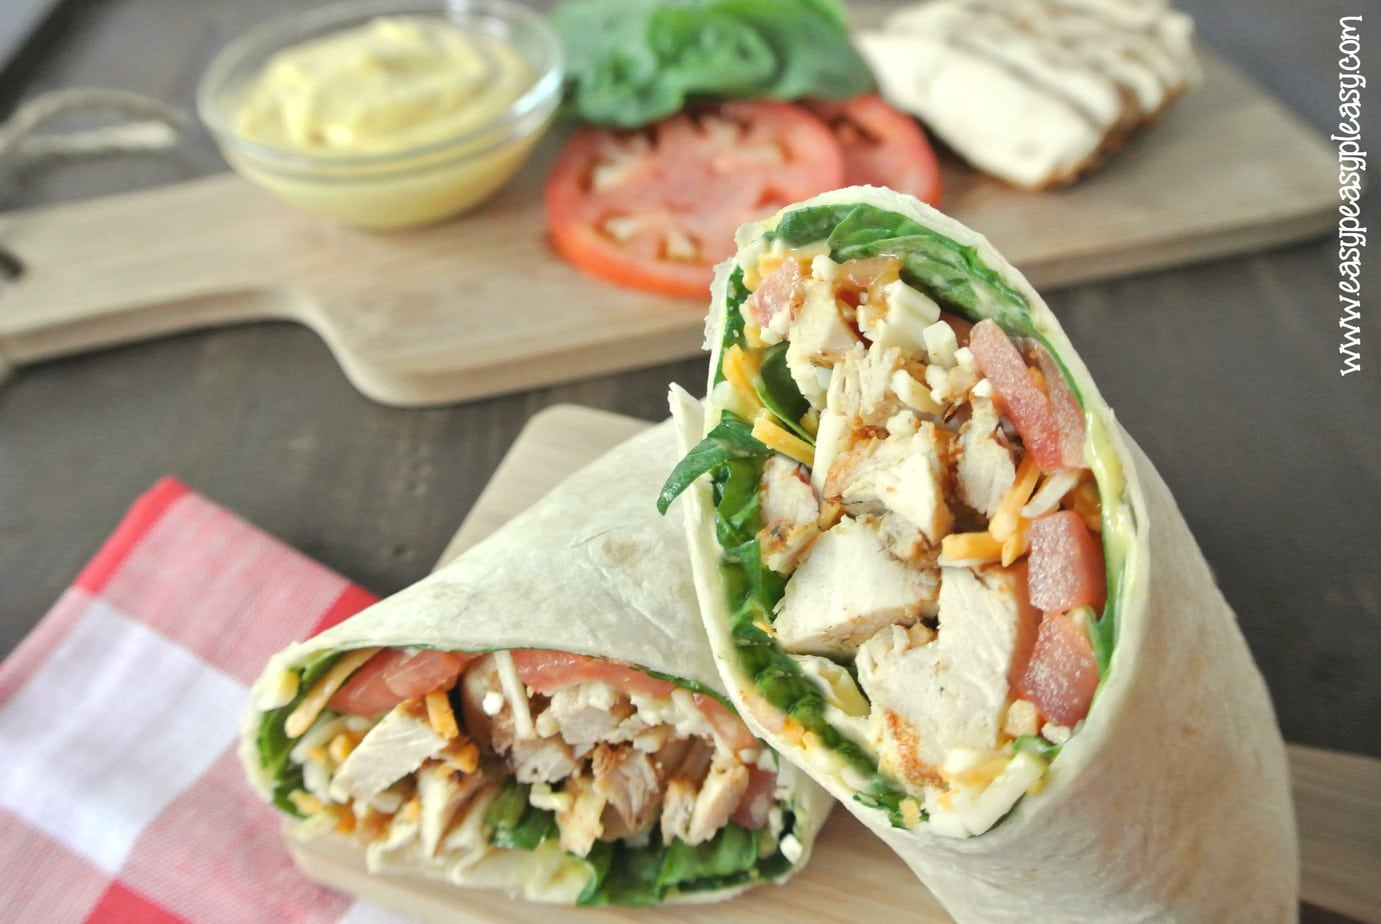 How To Roll A Picture Perfect Grilled Chicken Wrap - Easy ...